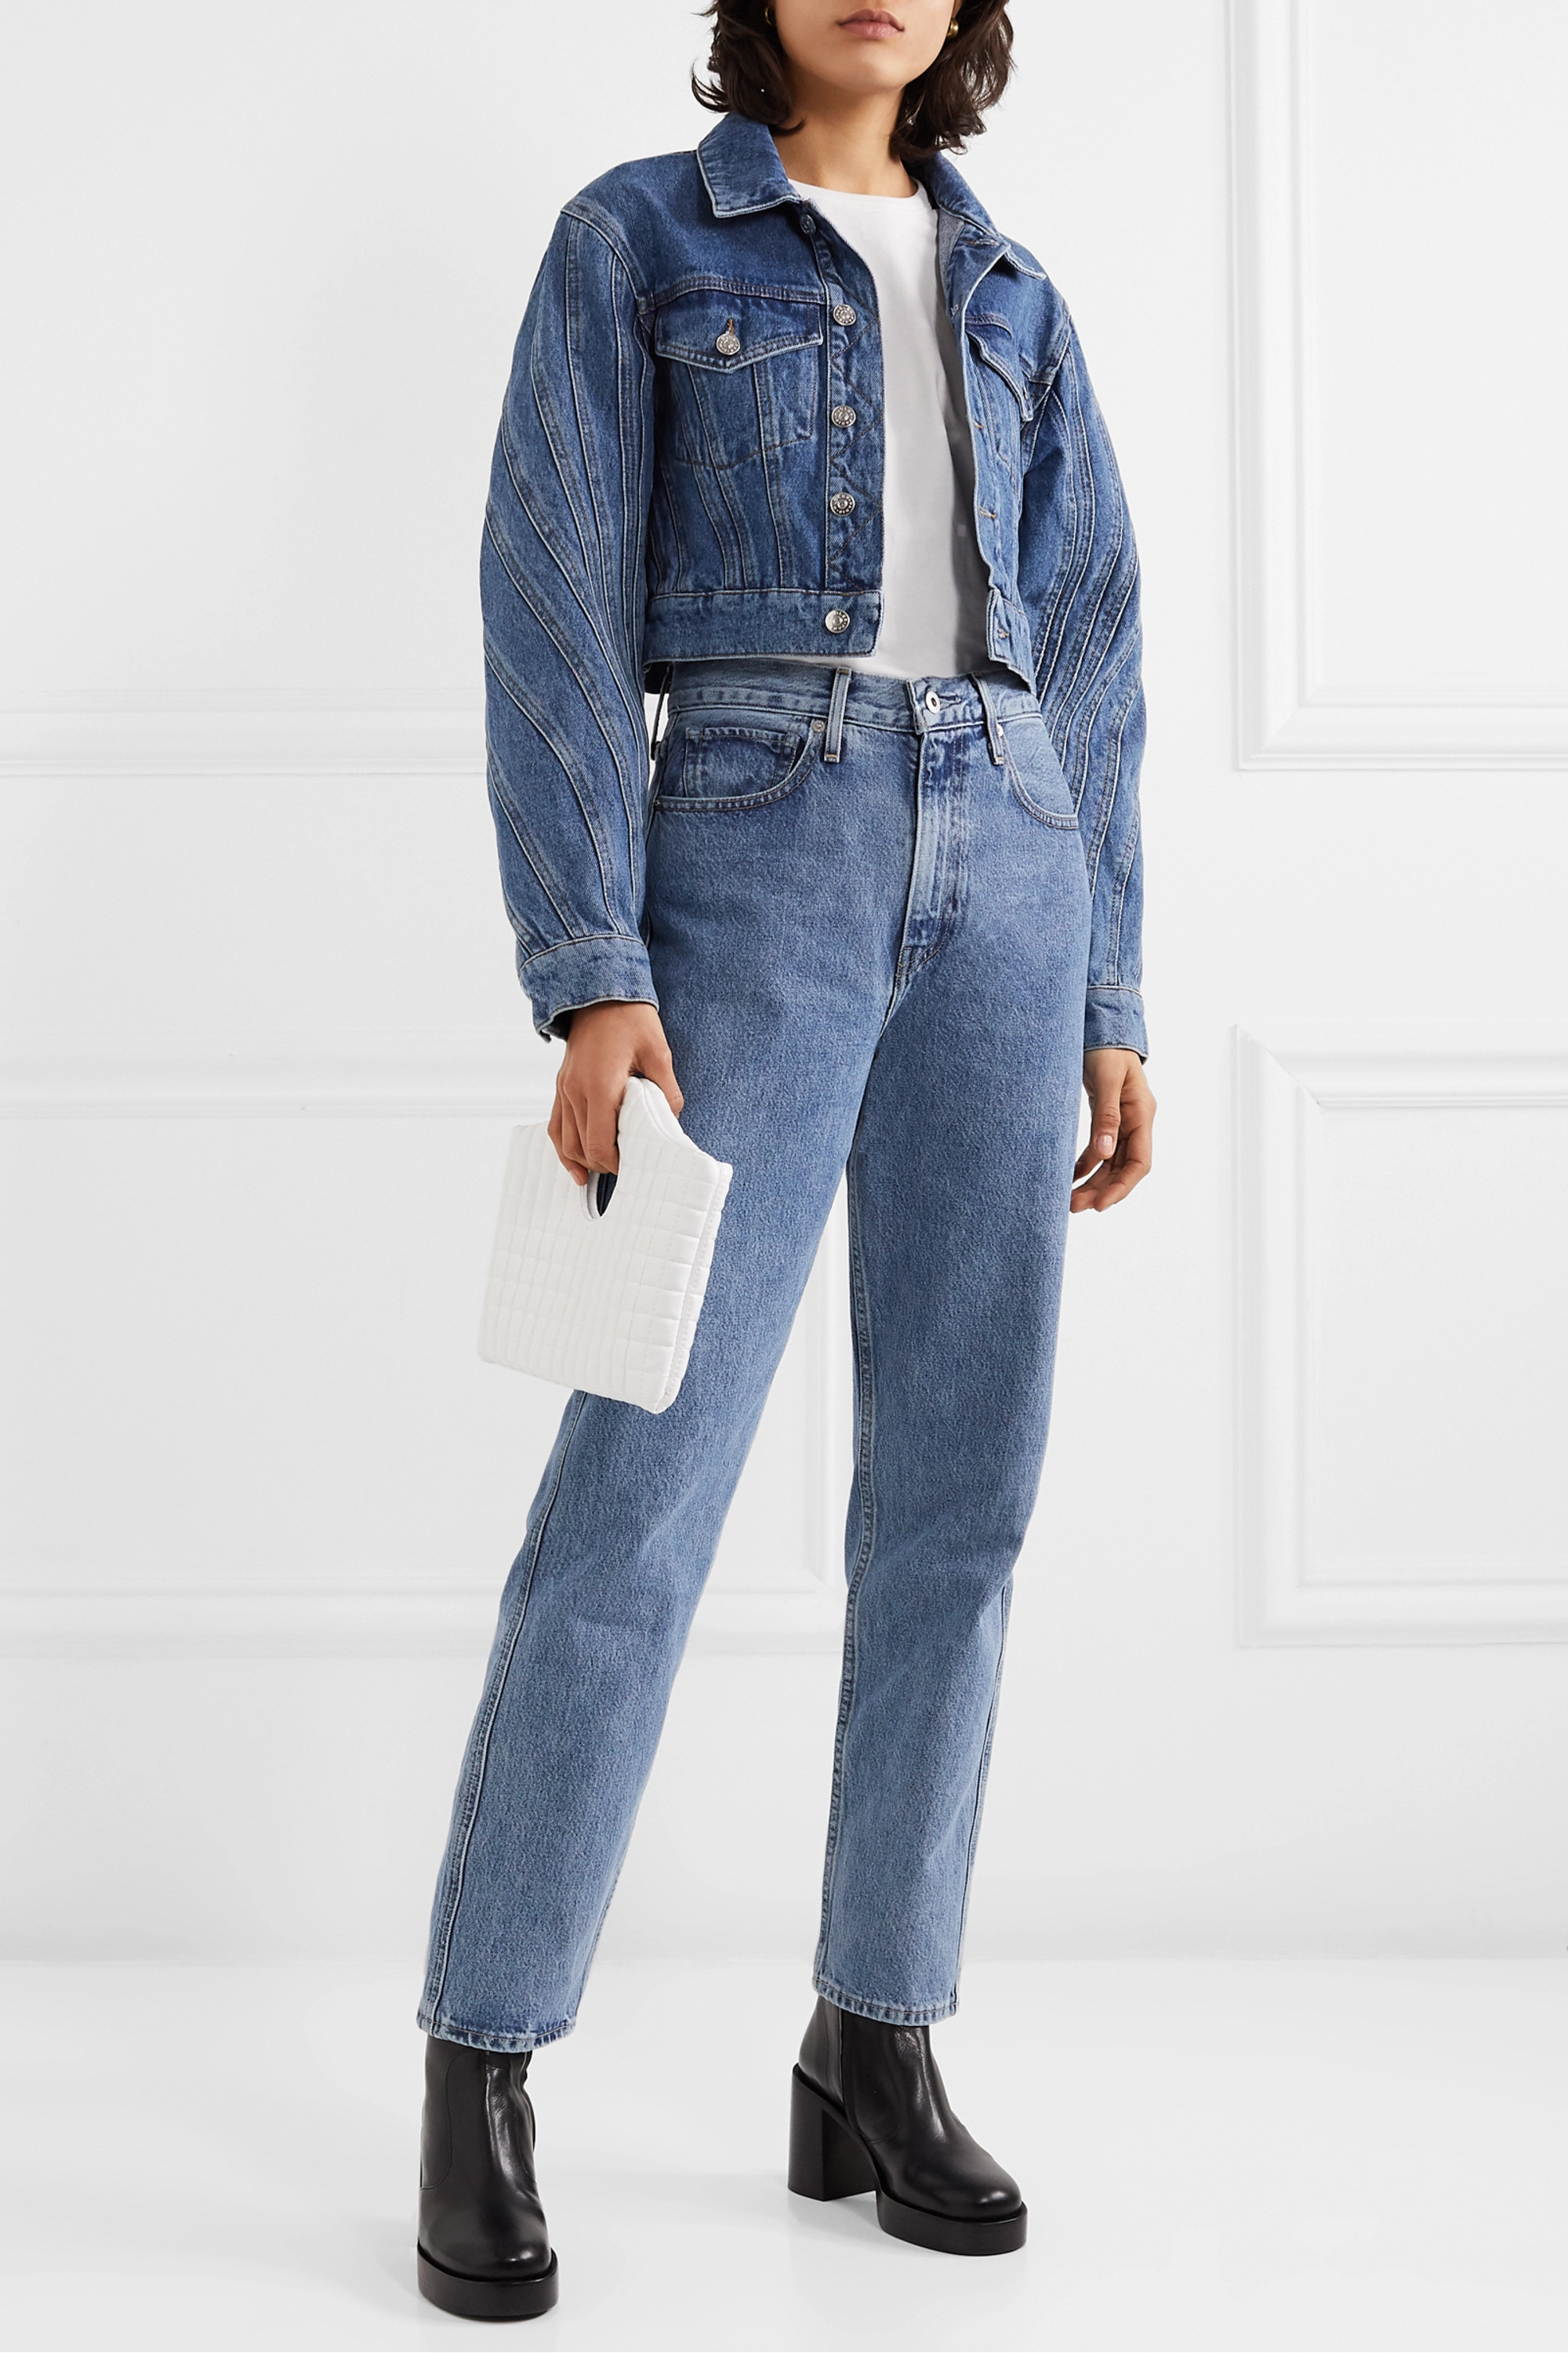 Levi's® Made & Crafted® The Column halbhohe Jeans mit geradem Bein